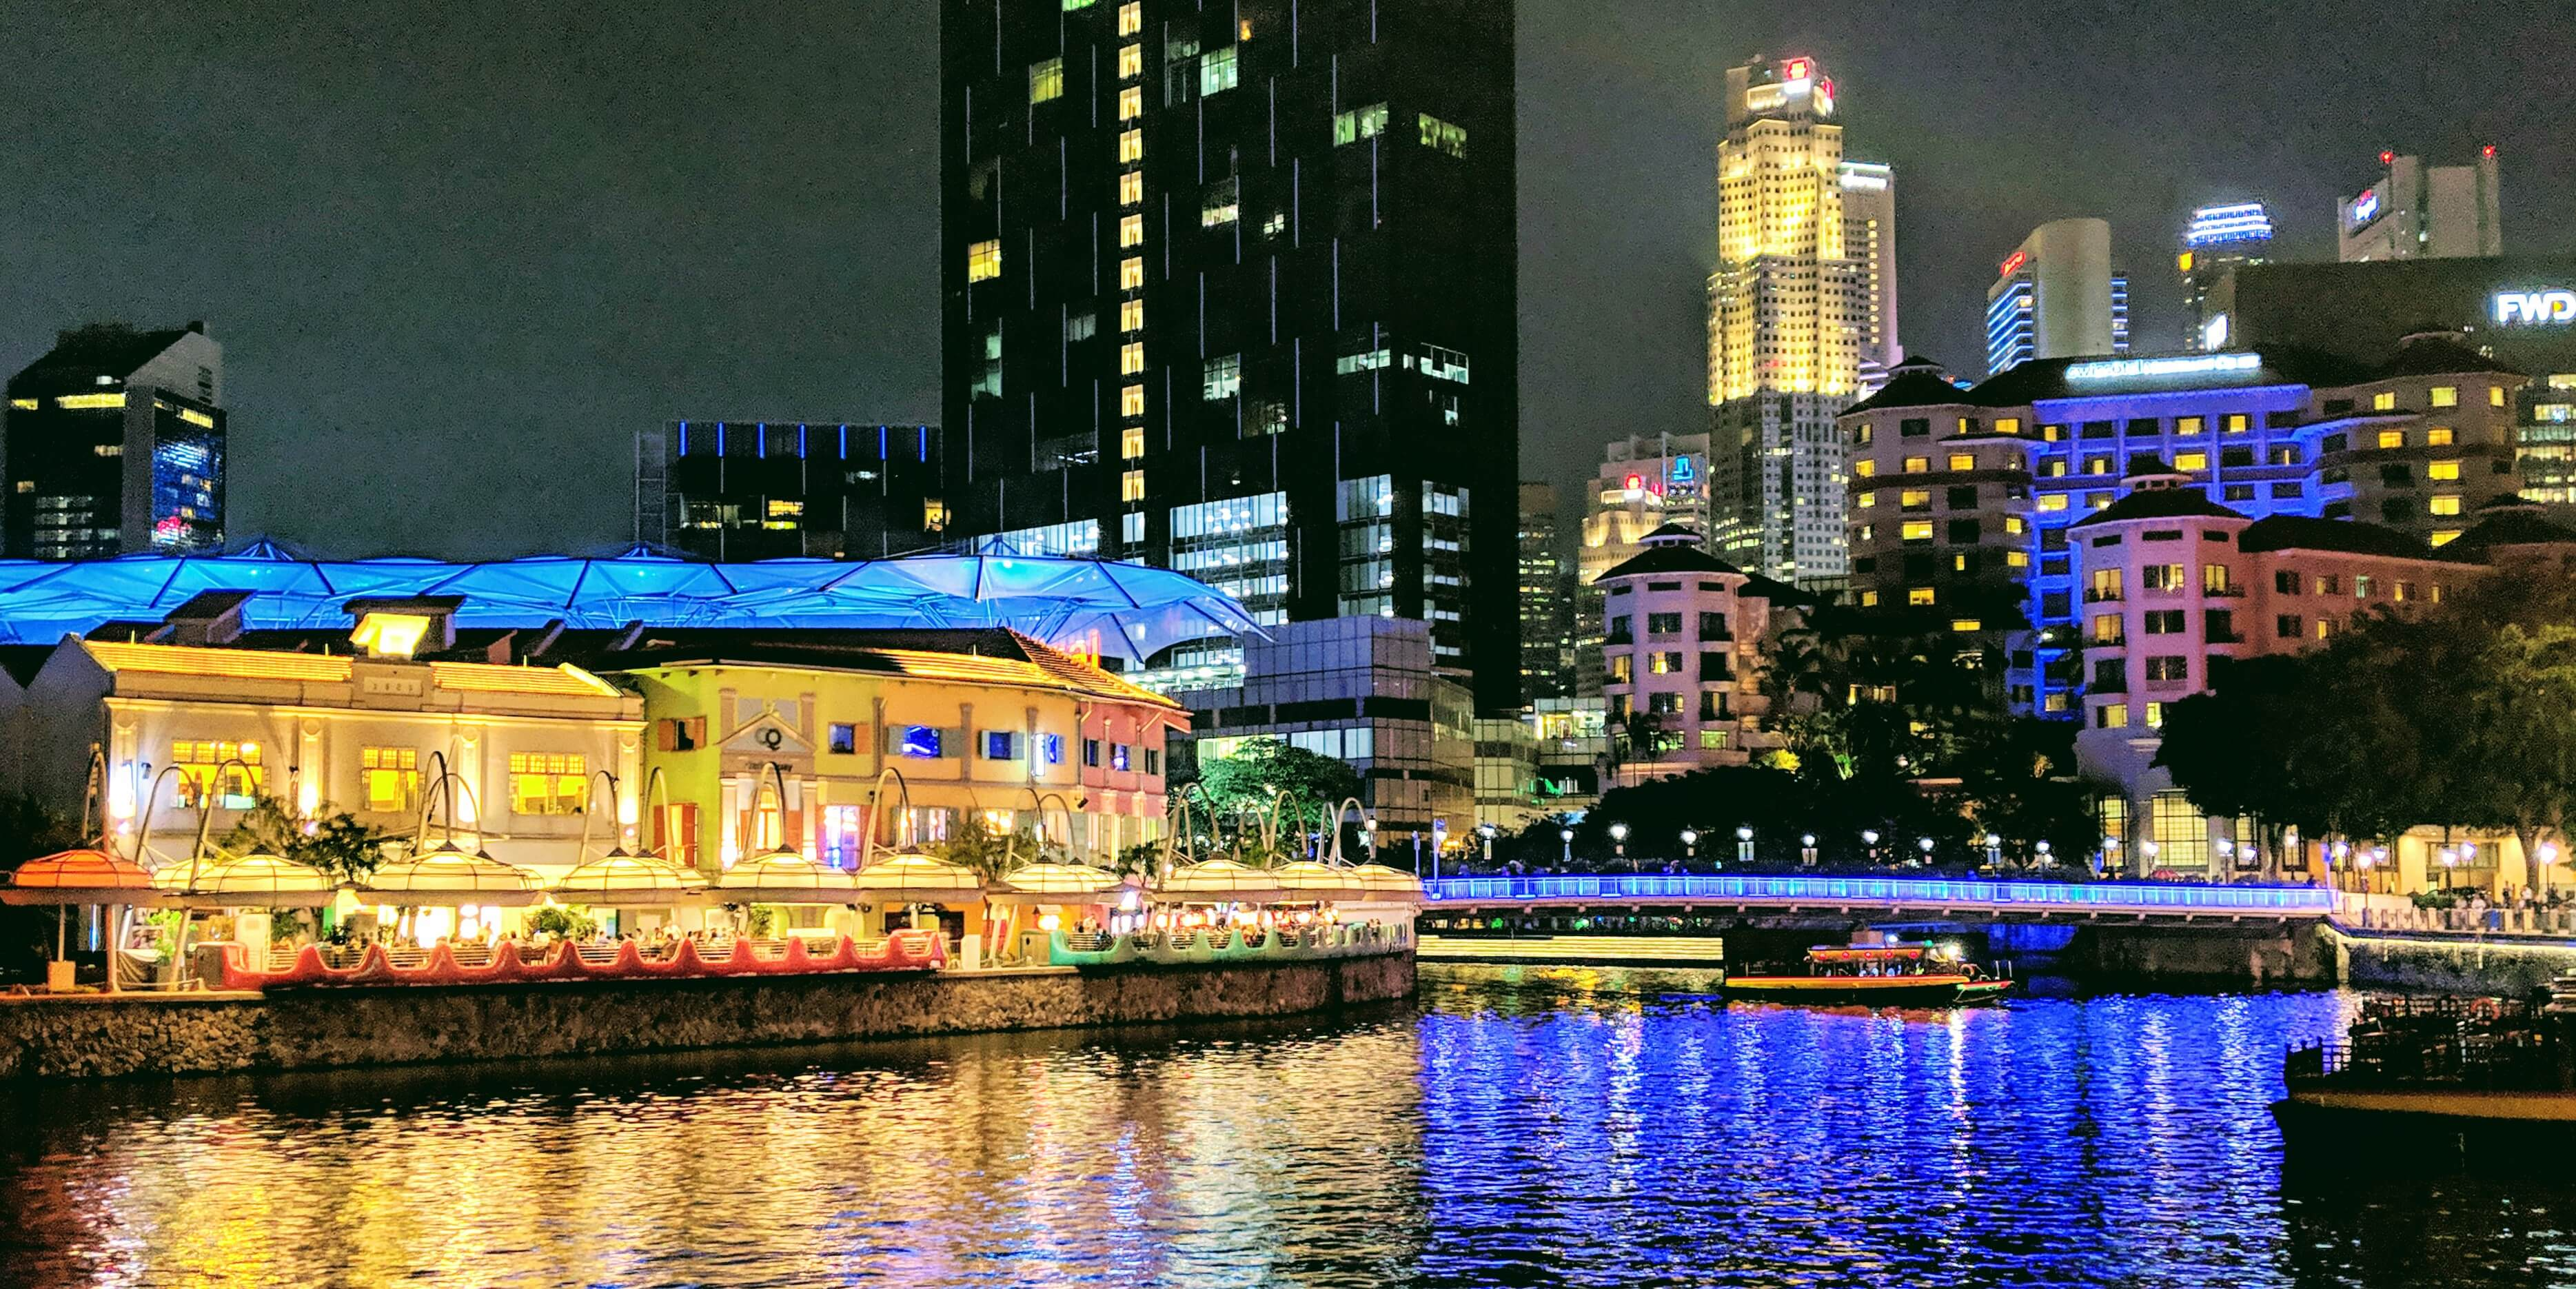 The beautiful colors of Clarke Quay at night.